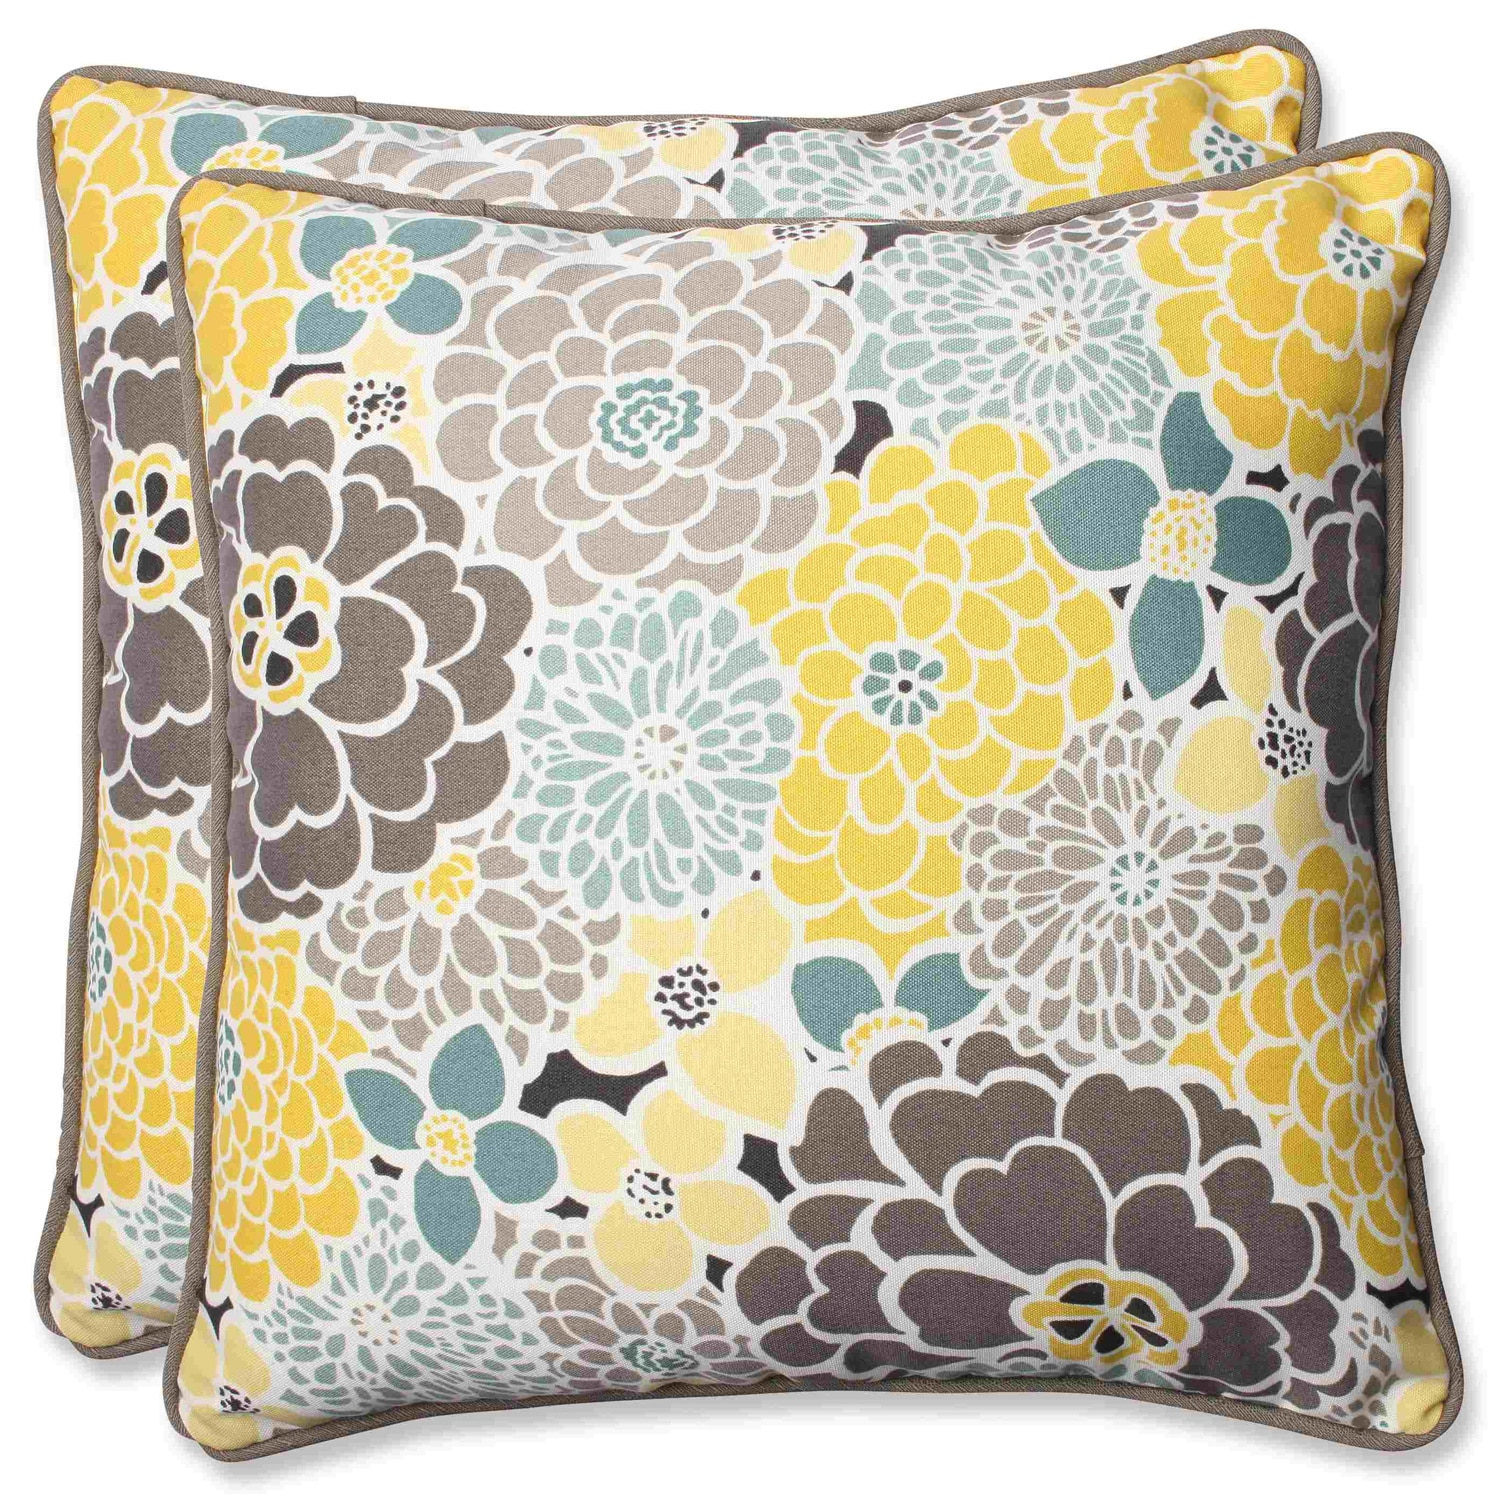 Shop Pillow Perfect Full Bloom 18 5 Inch Outdoor Throw Pillows Set